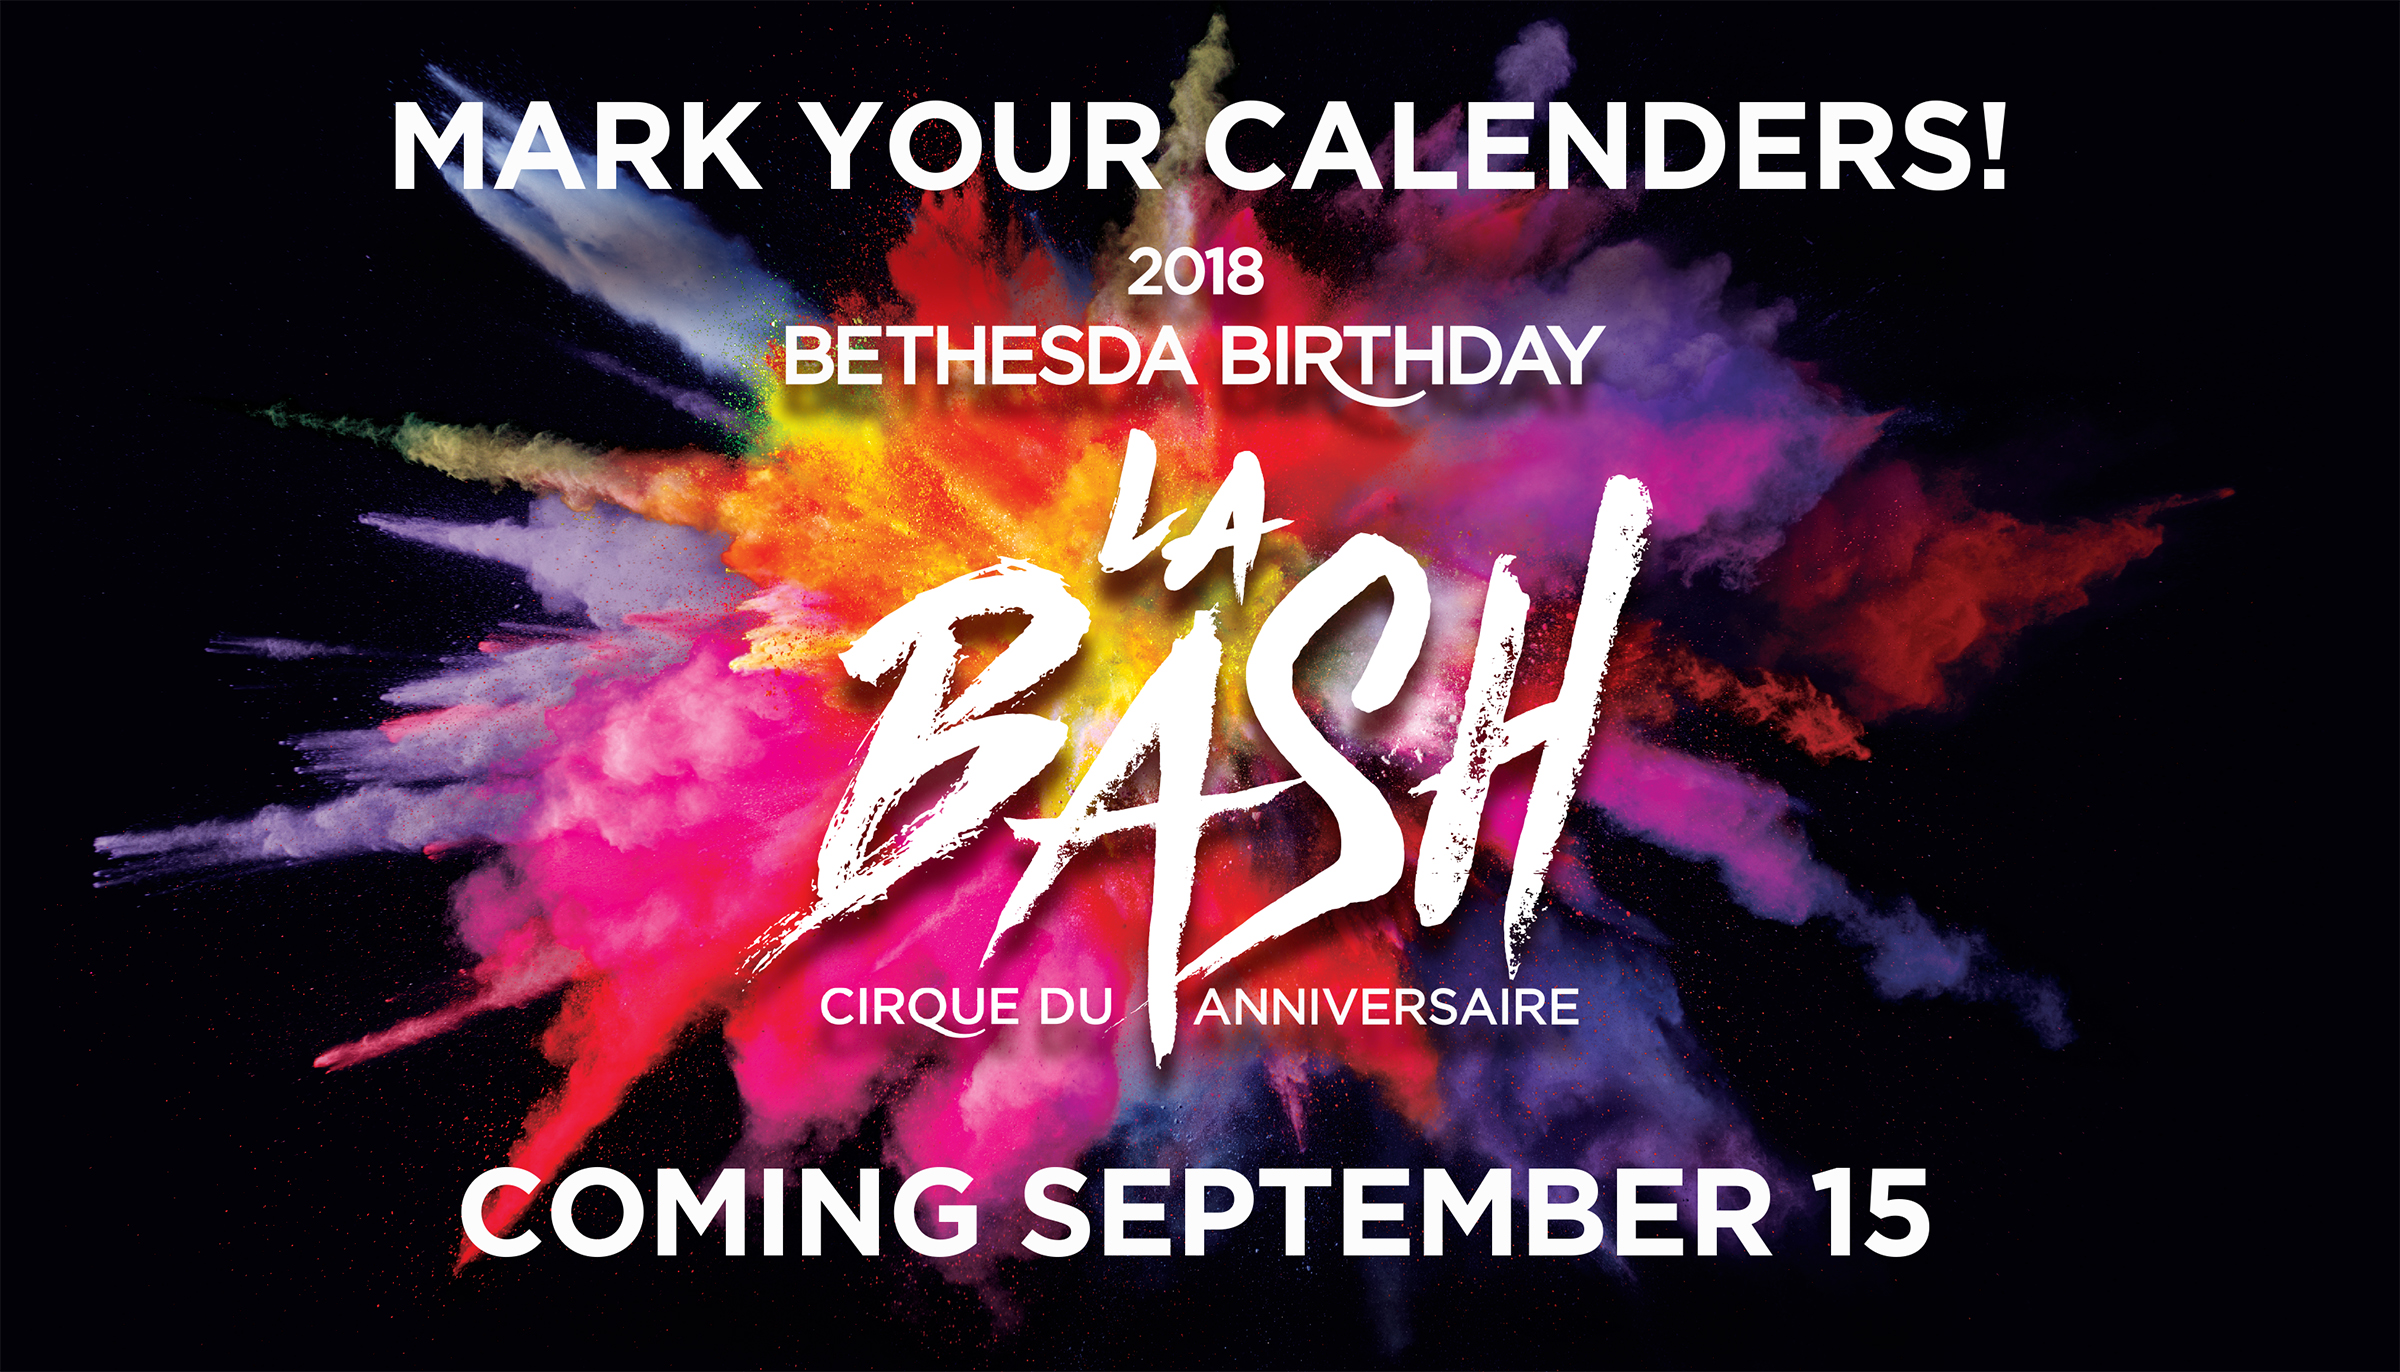 Mark Your Calendar - Birthday Bash 2018